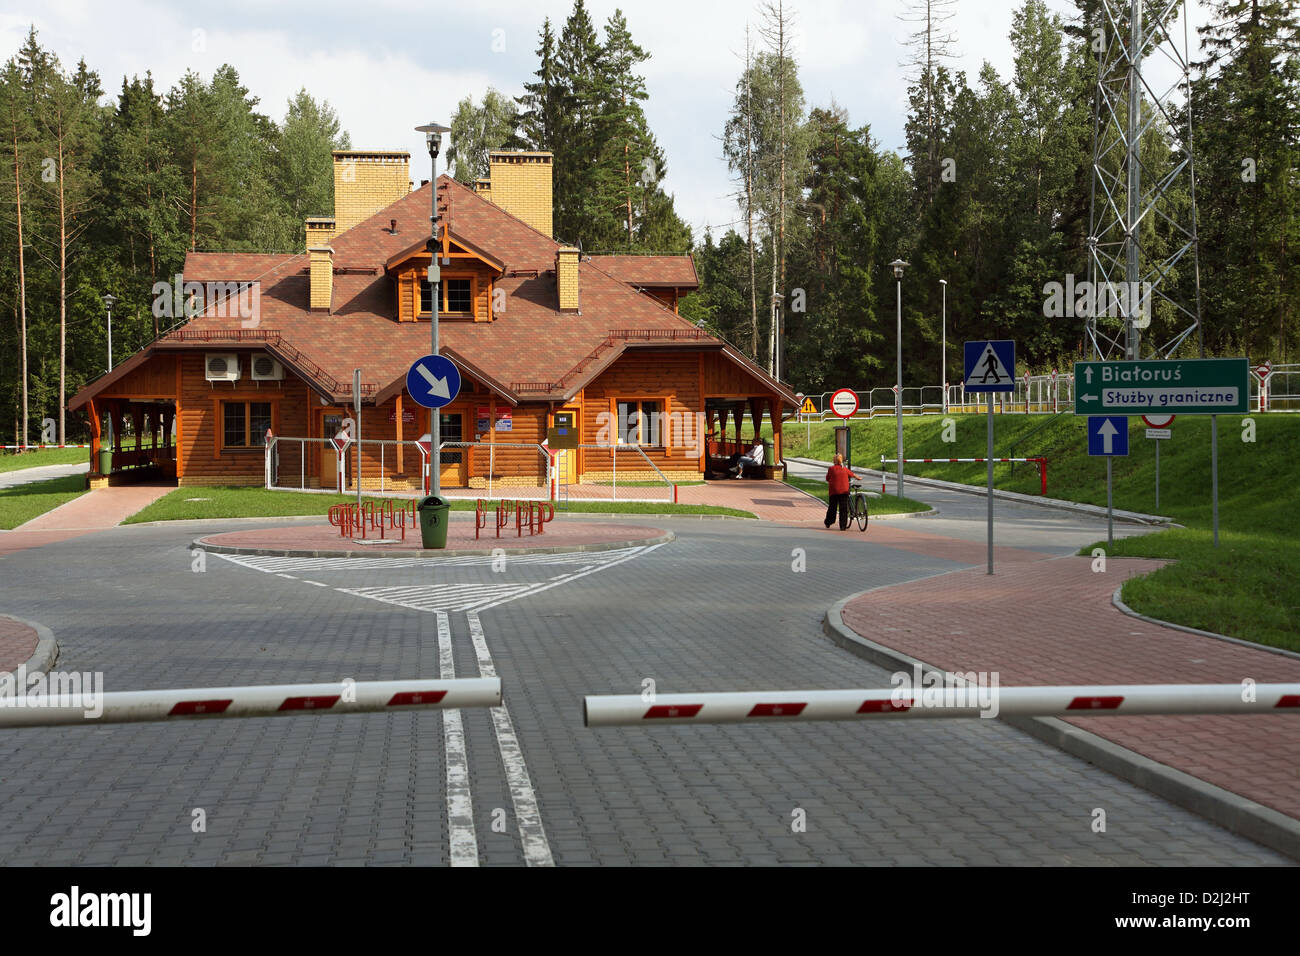 What border checkpoints does Belarus have Borders of the Republic of Belarus